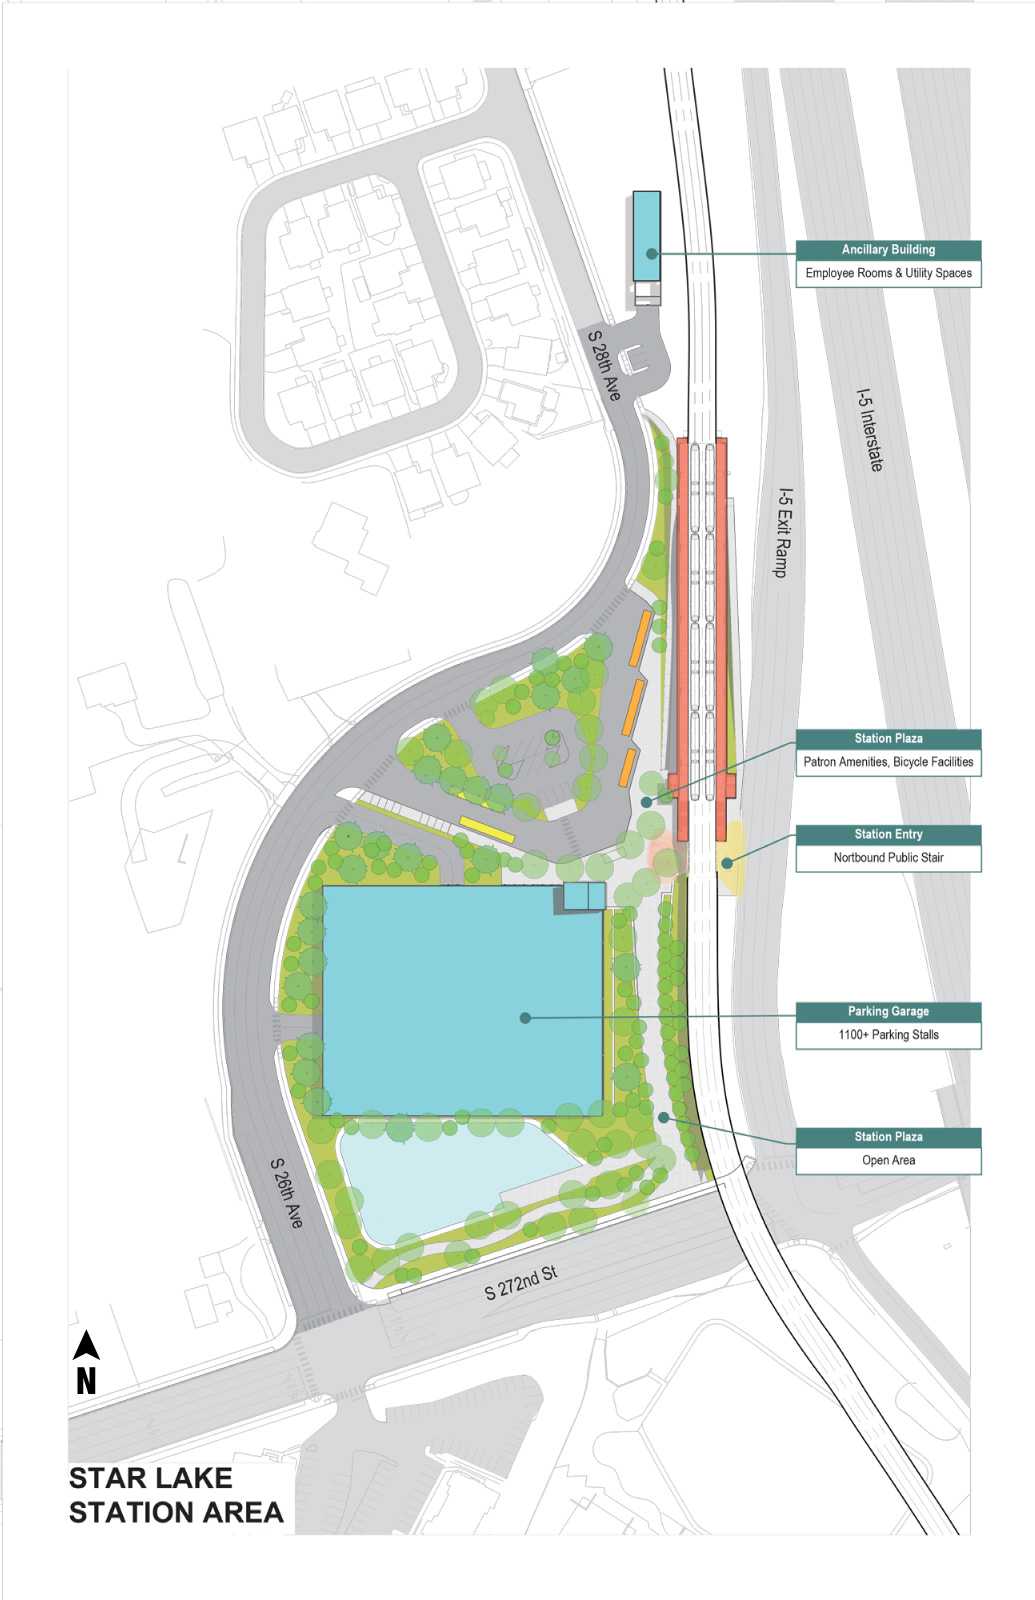 Site plan showing tracks, station and parking garage